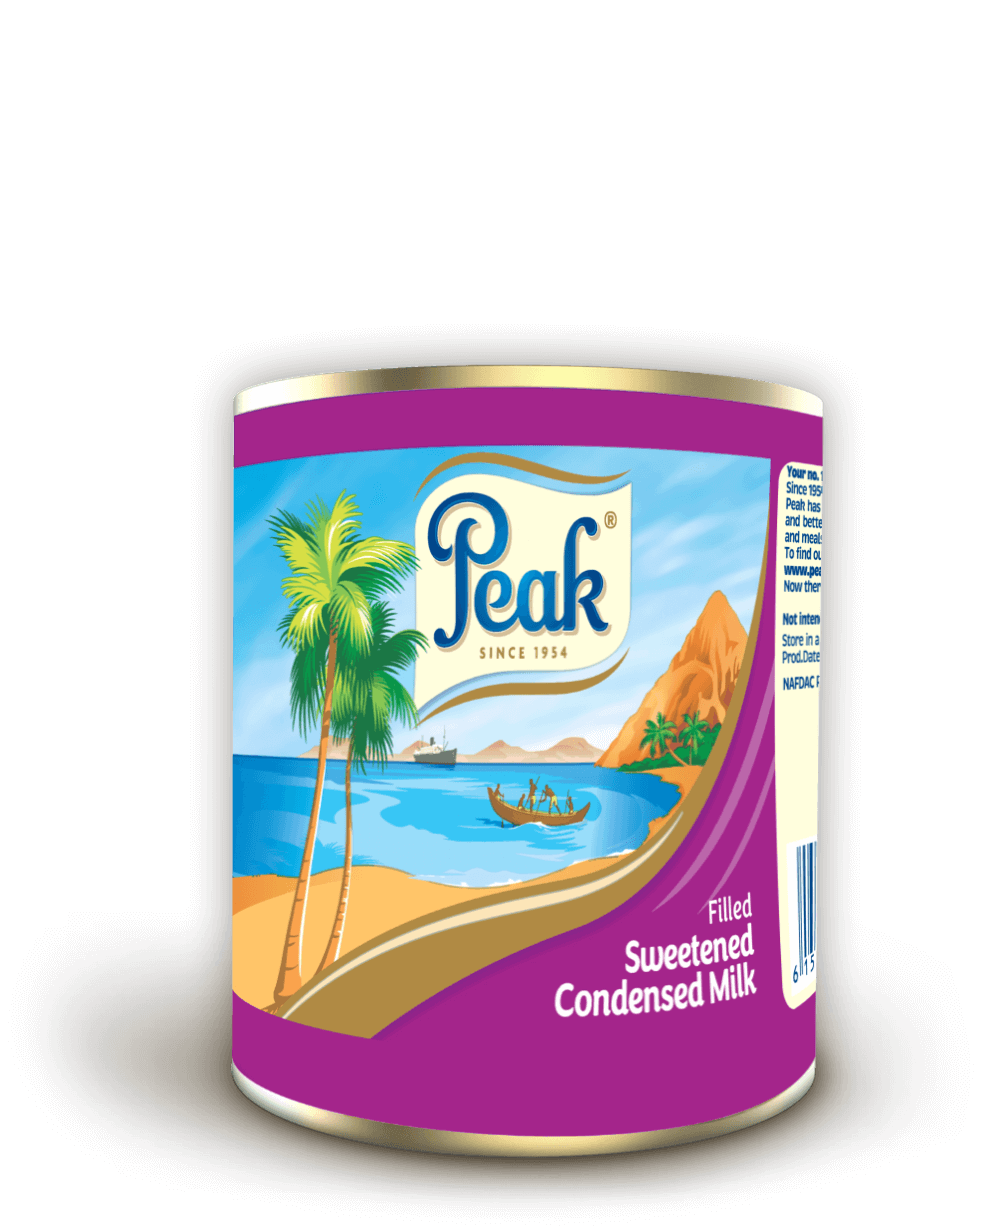 Peak Filled Sweetened Condensed Milk Tin